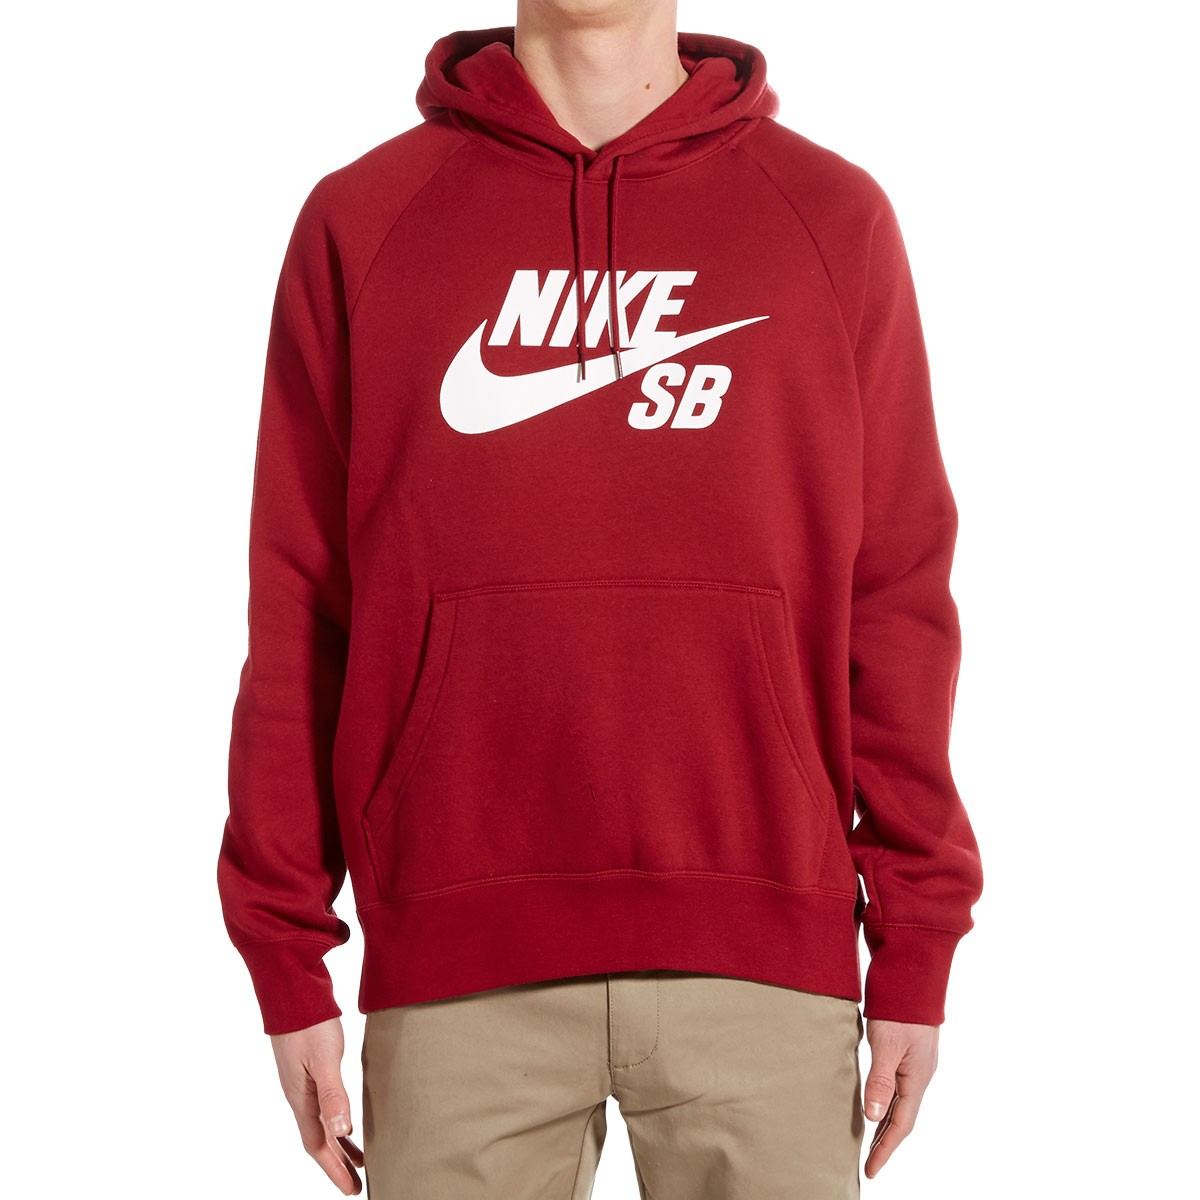 cc1717aa9cd8 Nike SB Icon Pullover Hoodie - Red White